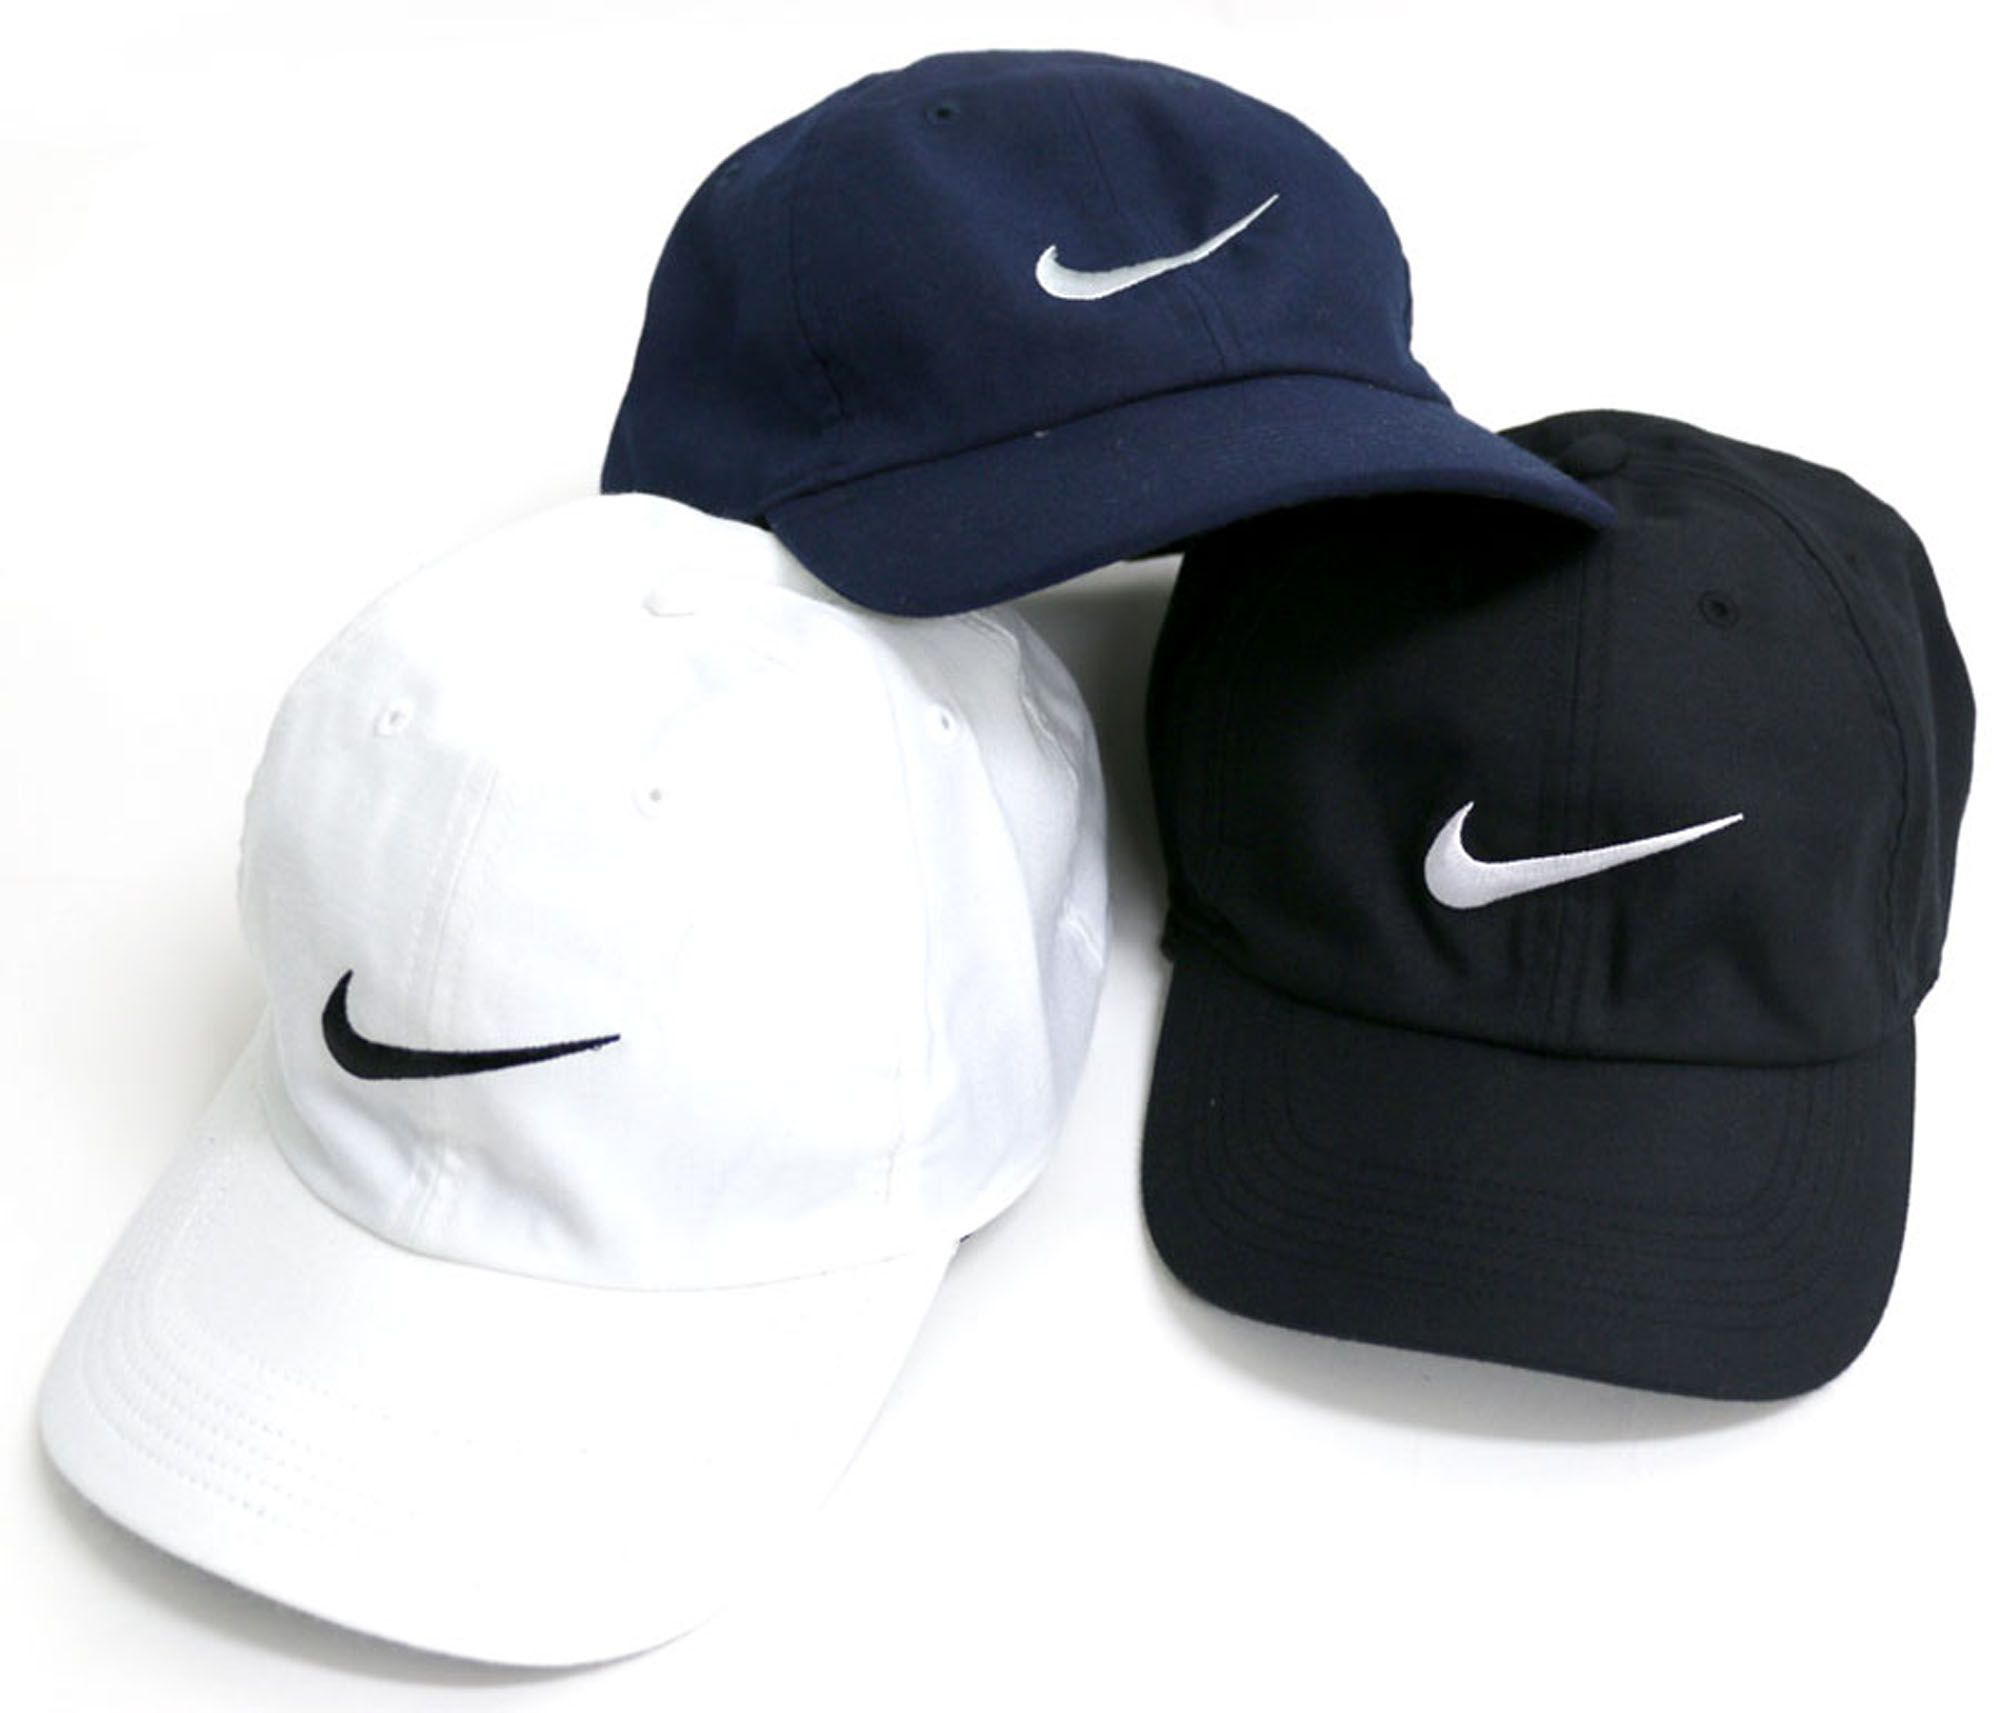 79e07dab1ff Nike Cap Executive Stylish Branded Cap For Mens Women Cricket Sports ...